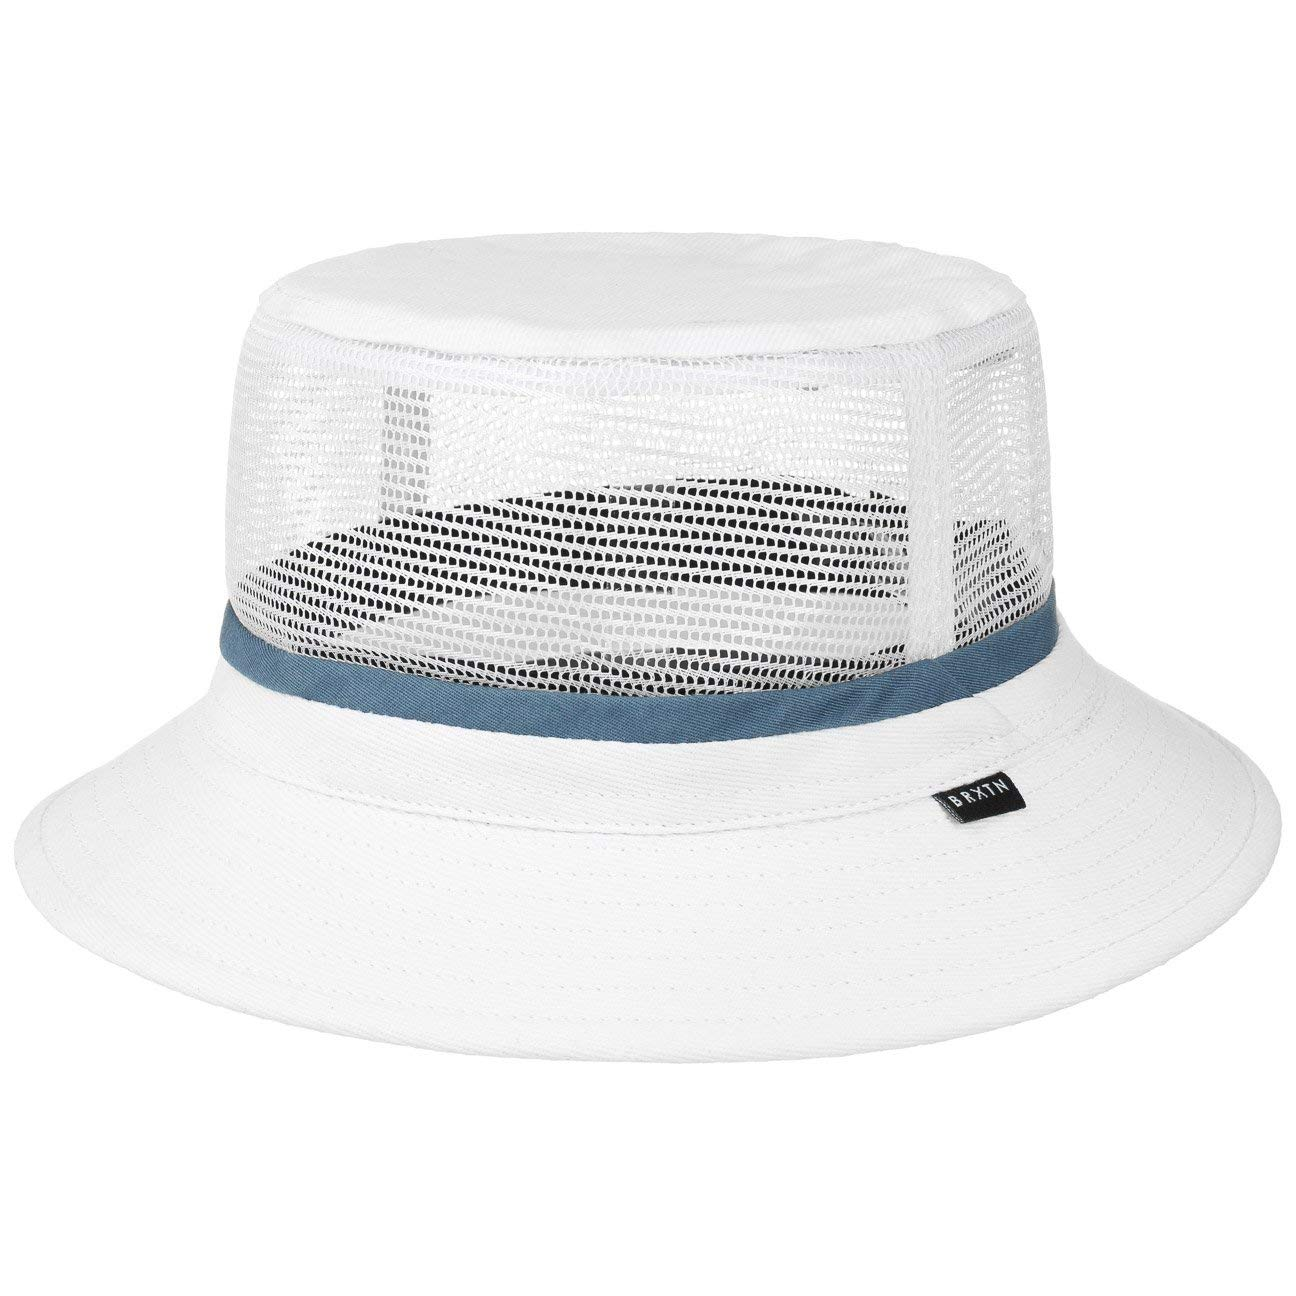 7be95661 Galleon - Brixton Hardy Bucket Hat - White/Blue - MD